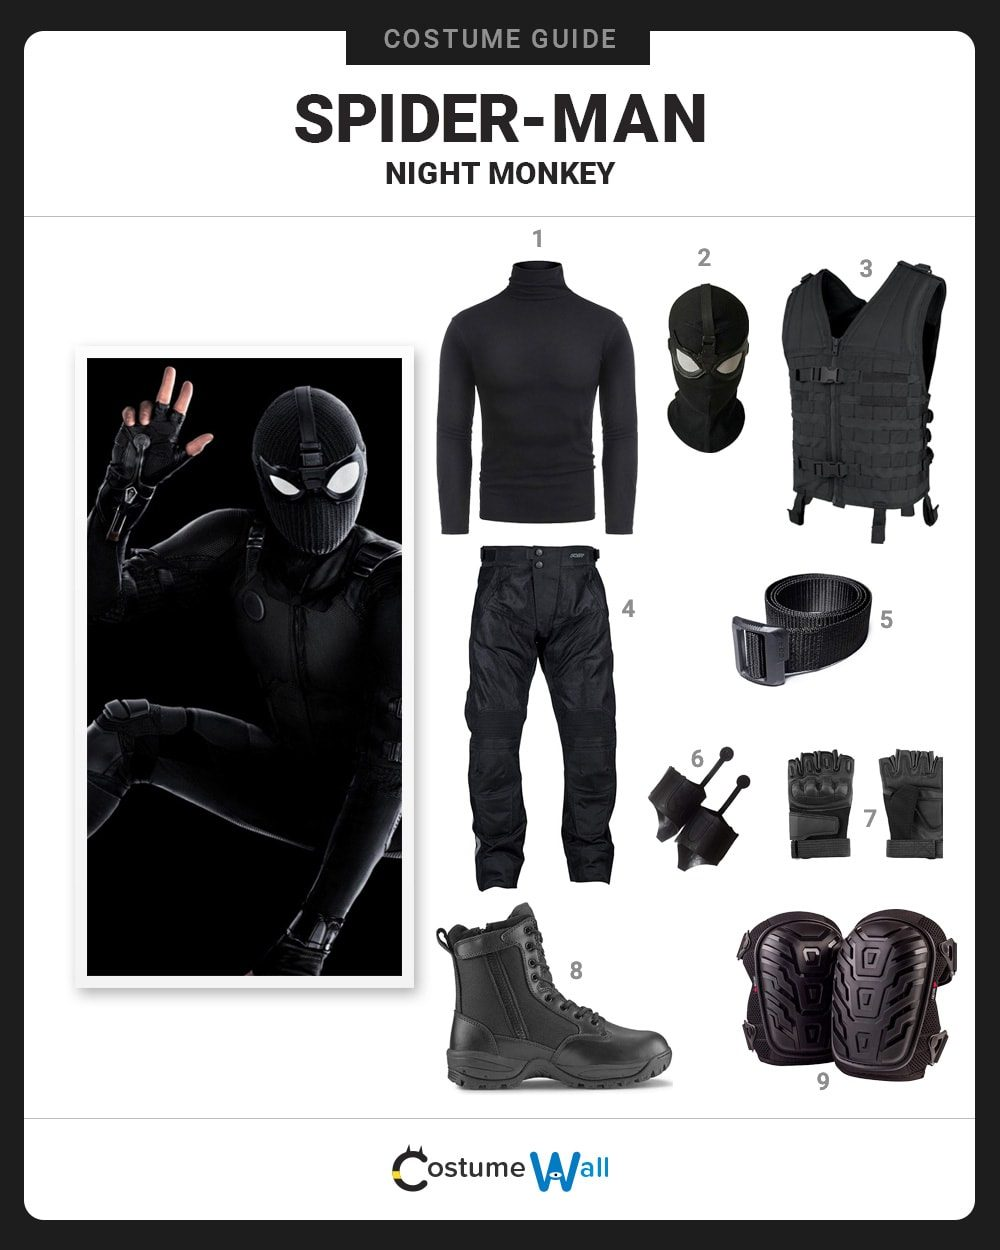 Spider-Man (Night Monkey) Costume Guide